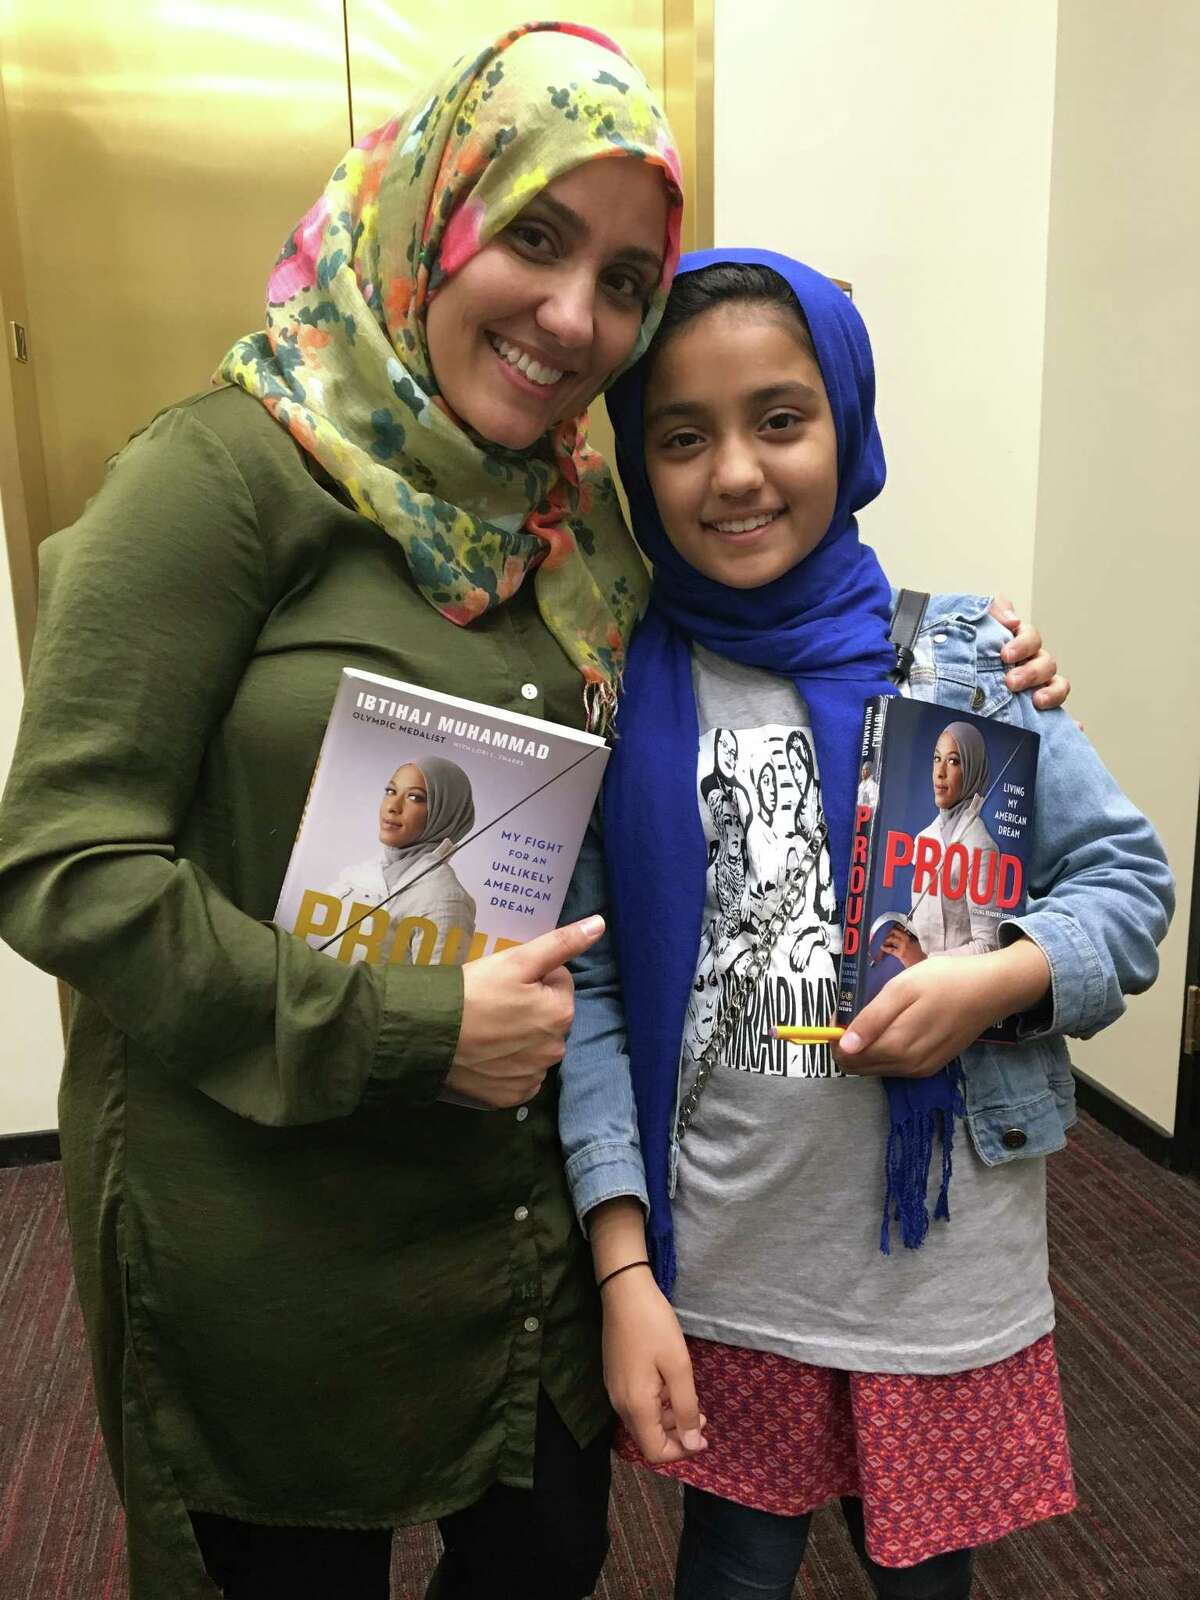 Nine-year-old Zainab Sharifa-Mukhtar and her mother Fatima Mukhtar from Clifton Park met two Muslim-American female icons at the University at Albany Performing Arts Center in Albany, N.Y. on Wednesday, Oct. 10, 2018.